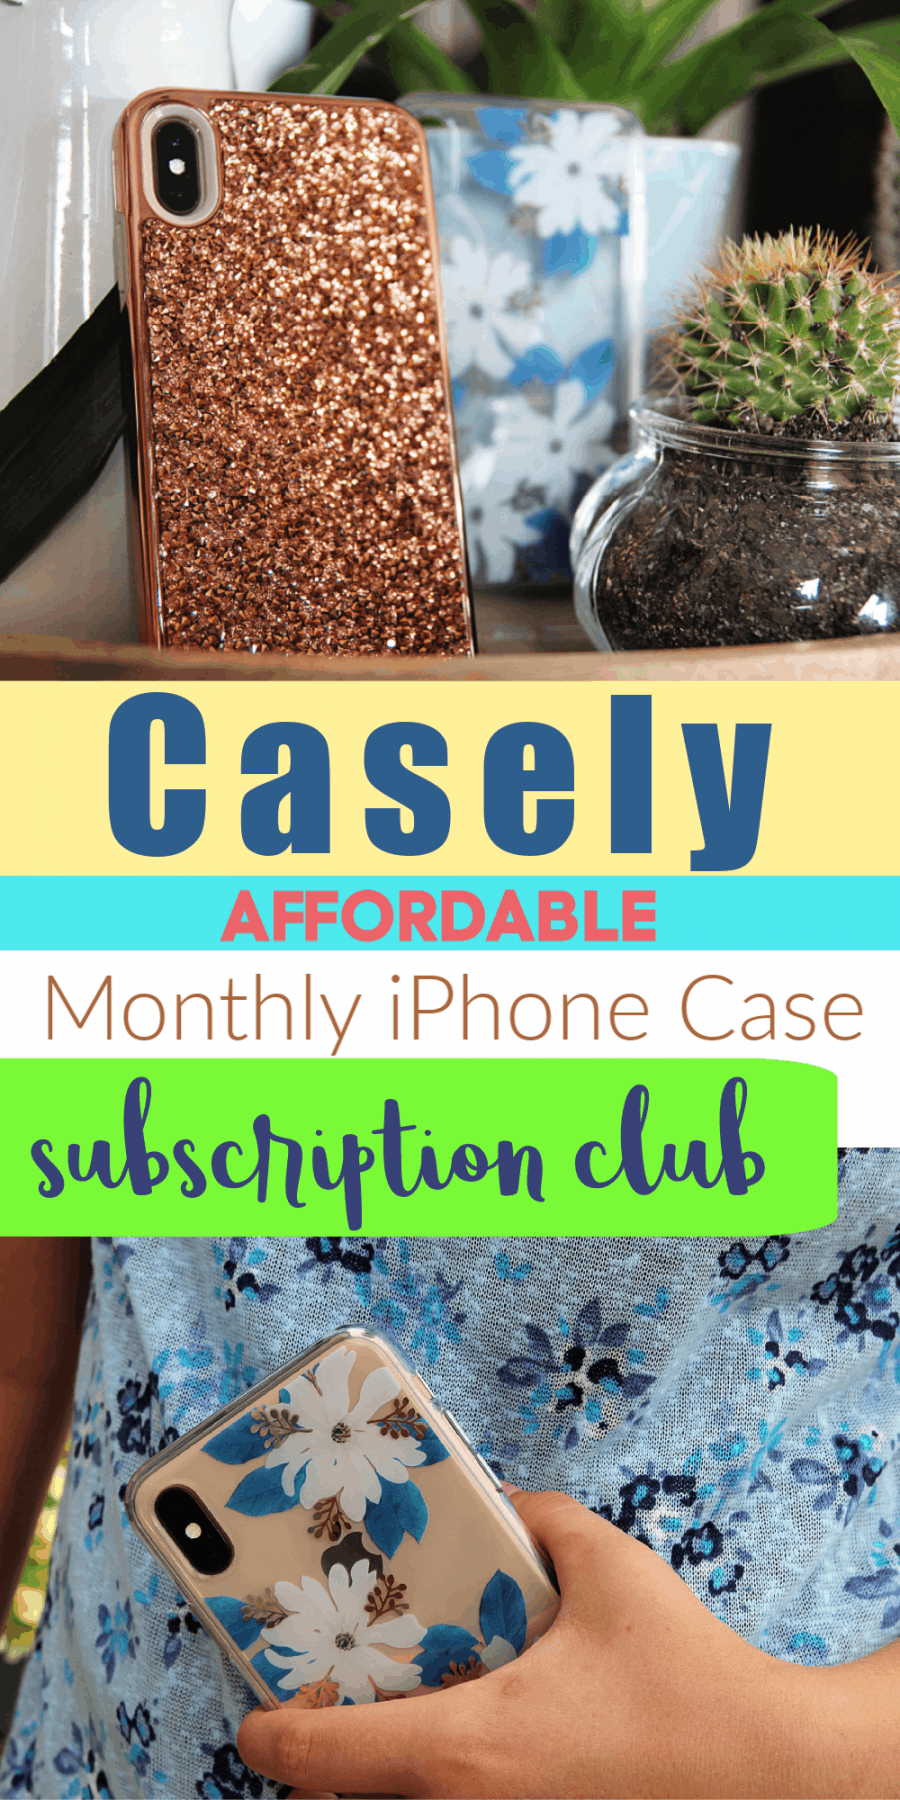 Casely - The First & Only iPhone Case Monthly Subscription Club!